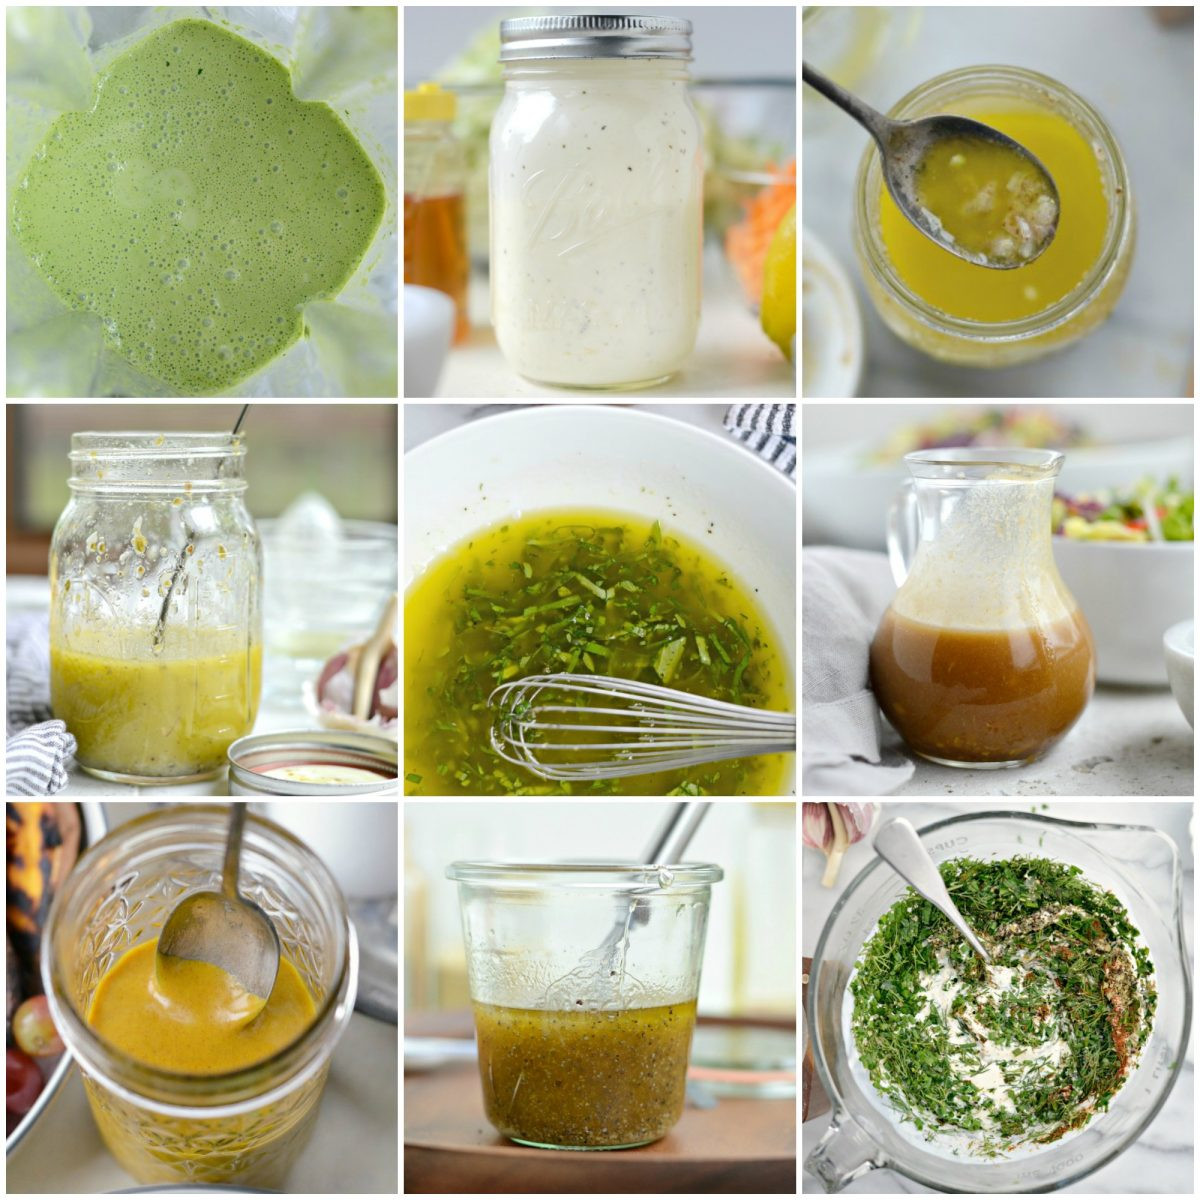 Best ideas about DIY Salad Dressings . Save or Pin Simply Scratch 50 Homemade Salad Dressings and Now.